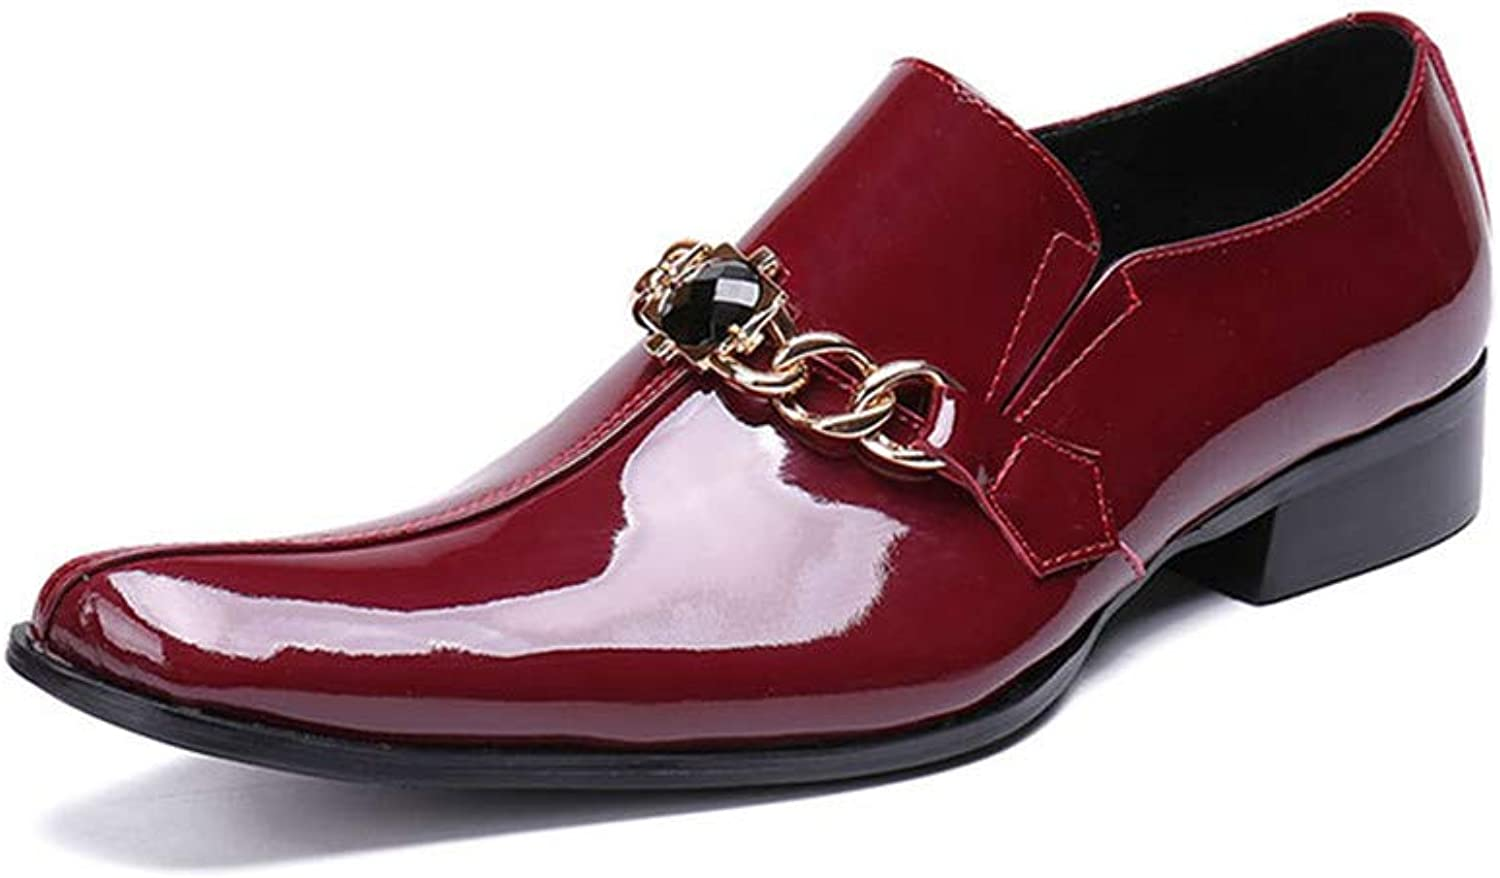 Sunny&Baby Men's Premium Genuine Patent Leather Oxfords Pointed Toe Wedding Dress shoes for Gentlemen with Metal Decor Abrasion Resistant (color   Red, Size   6 D(M) US)